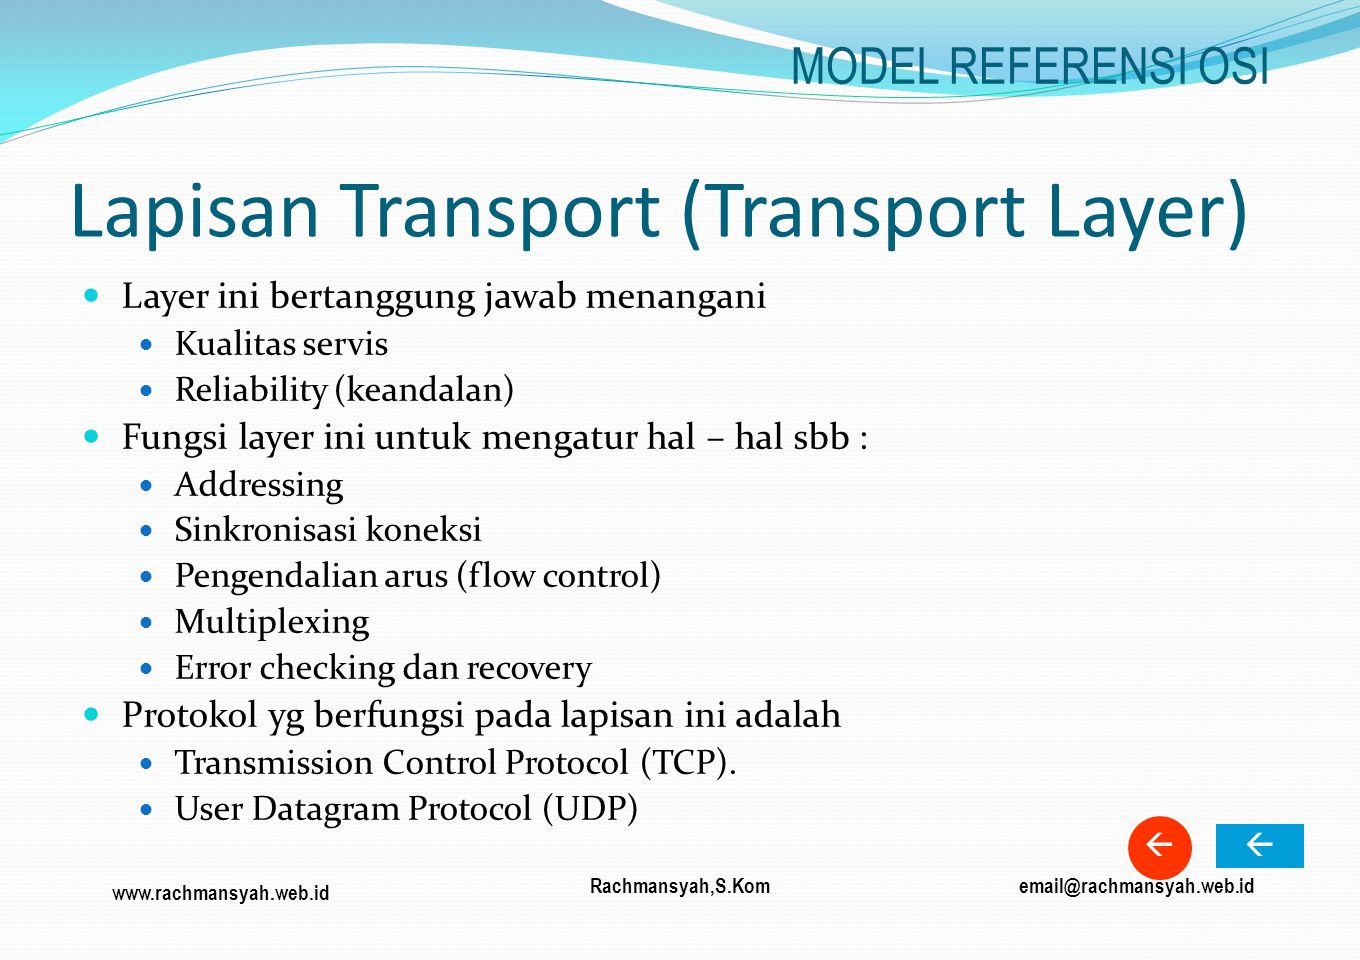 Lapisan Transport (Transport Layer)